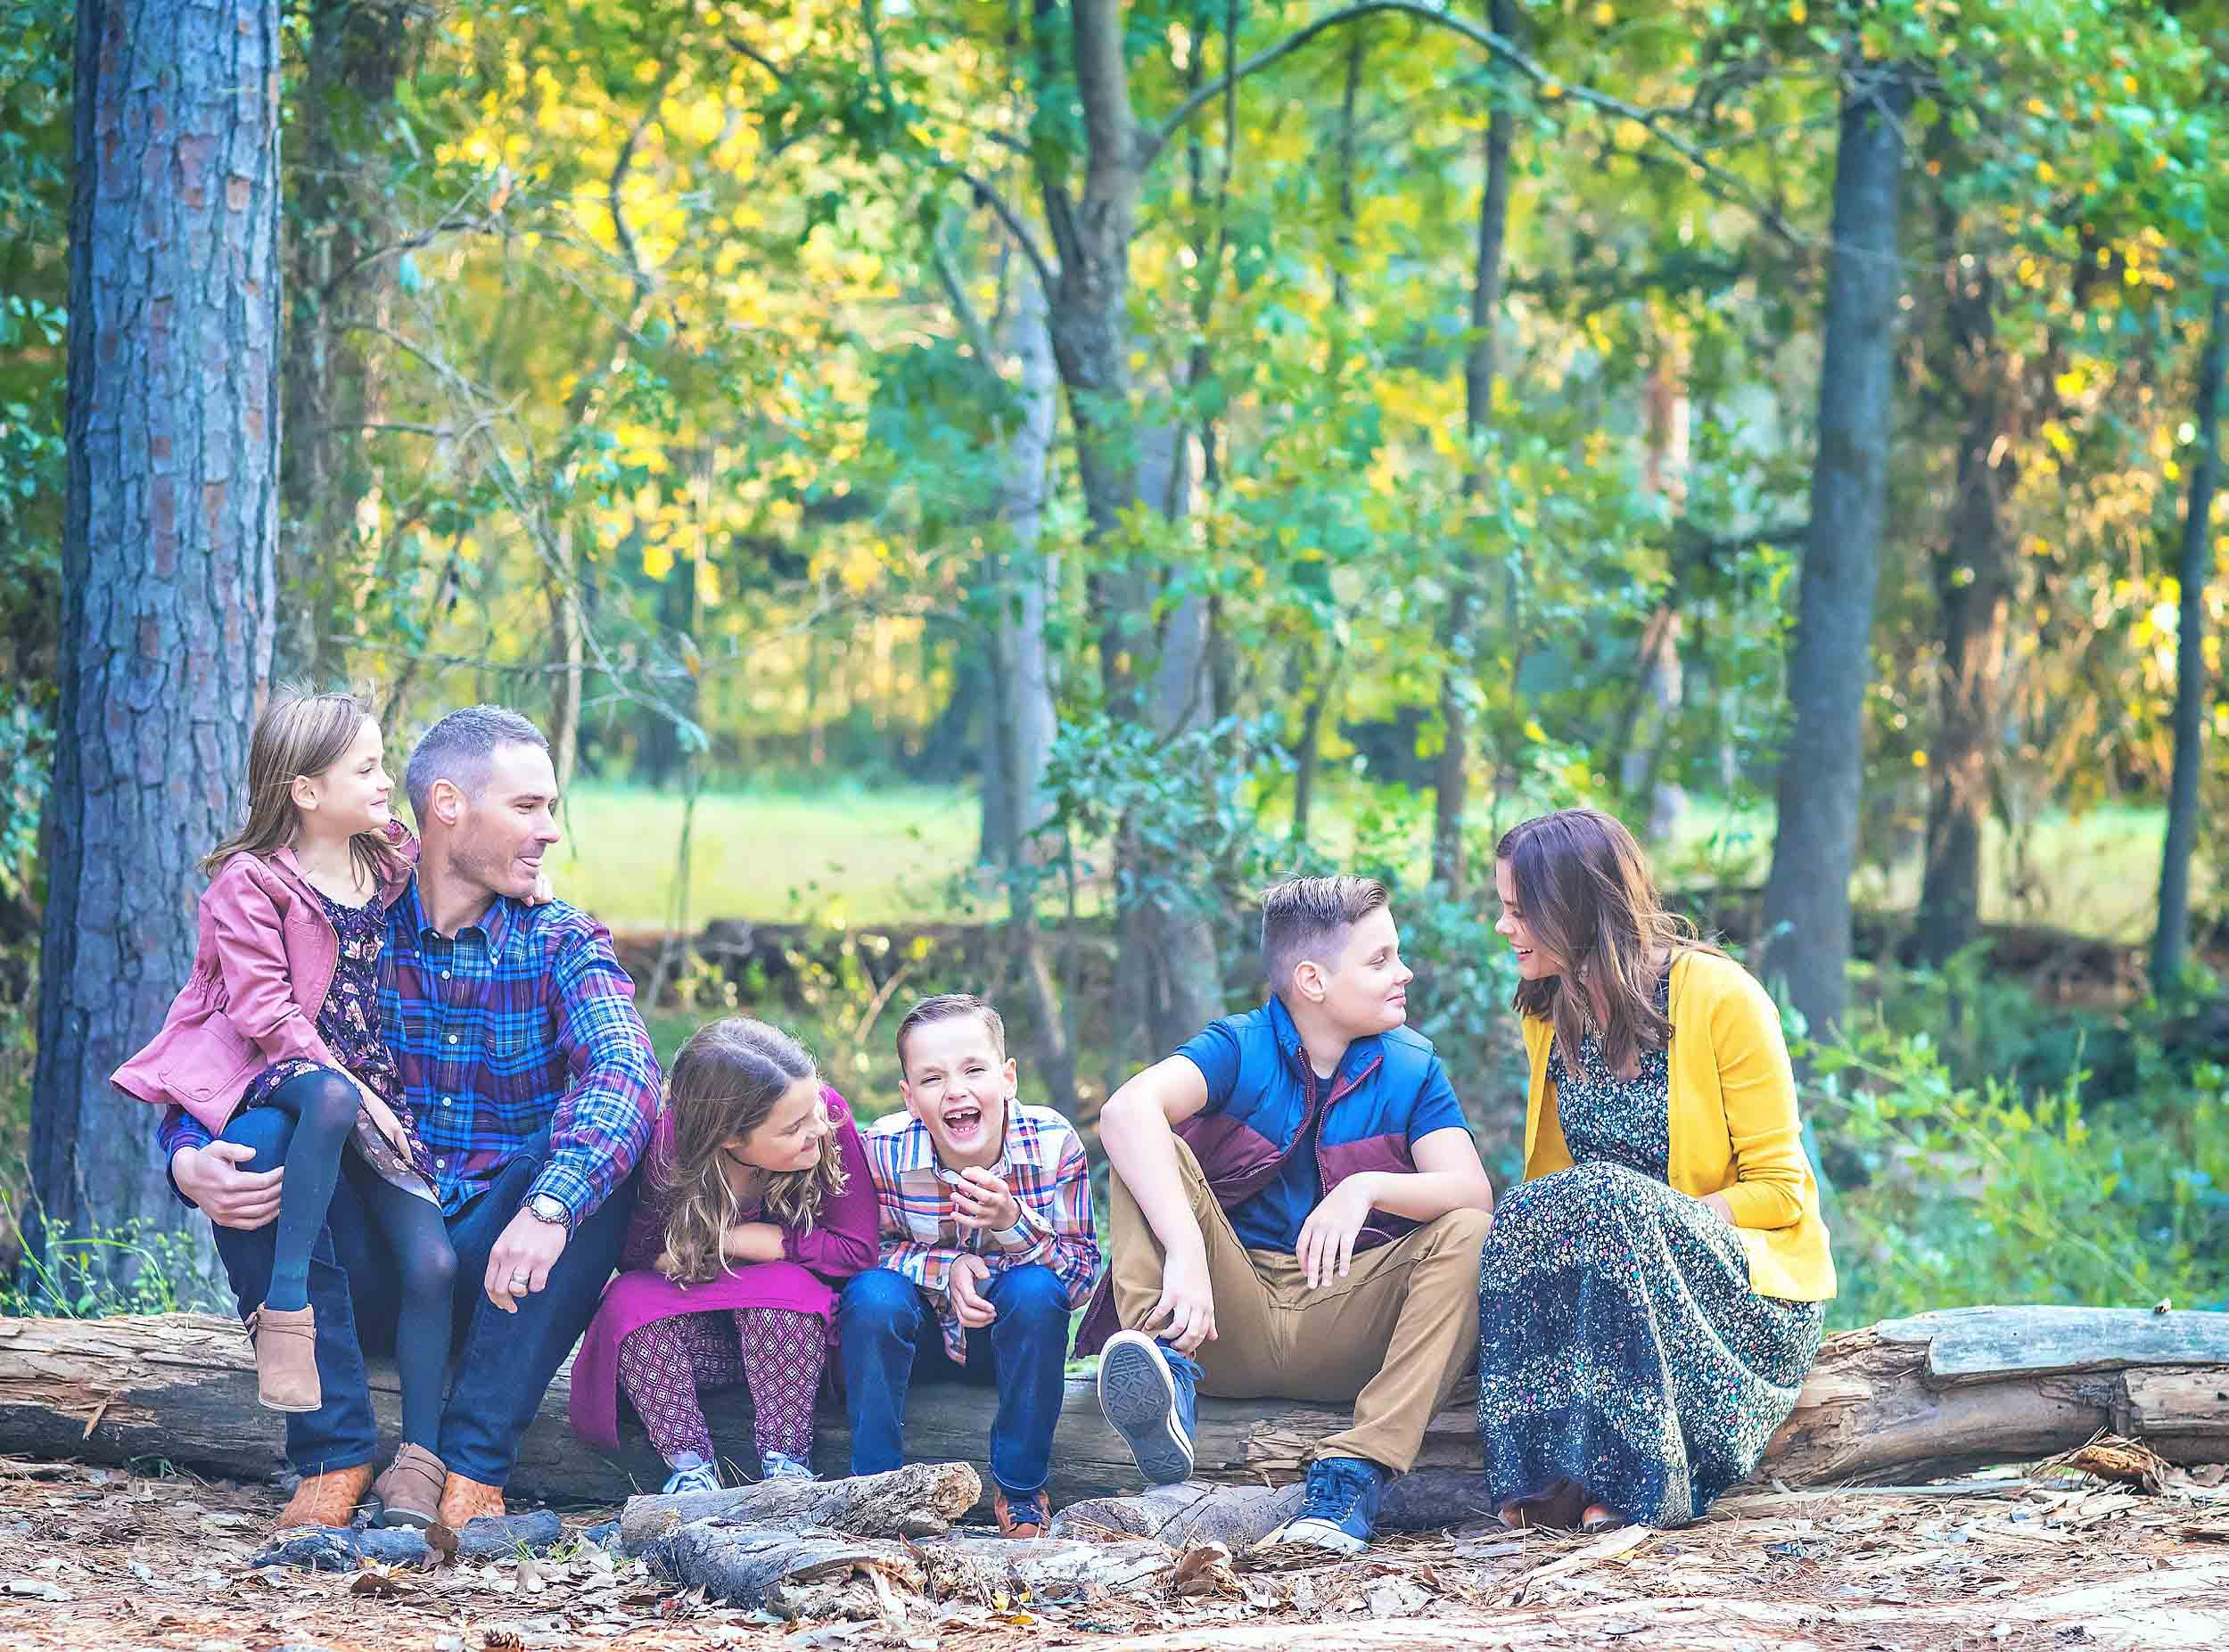 Outdoor lifestyle portrait of family in the woods in The Woodlands, Texas.